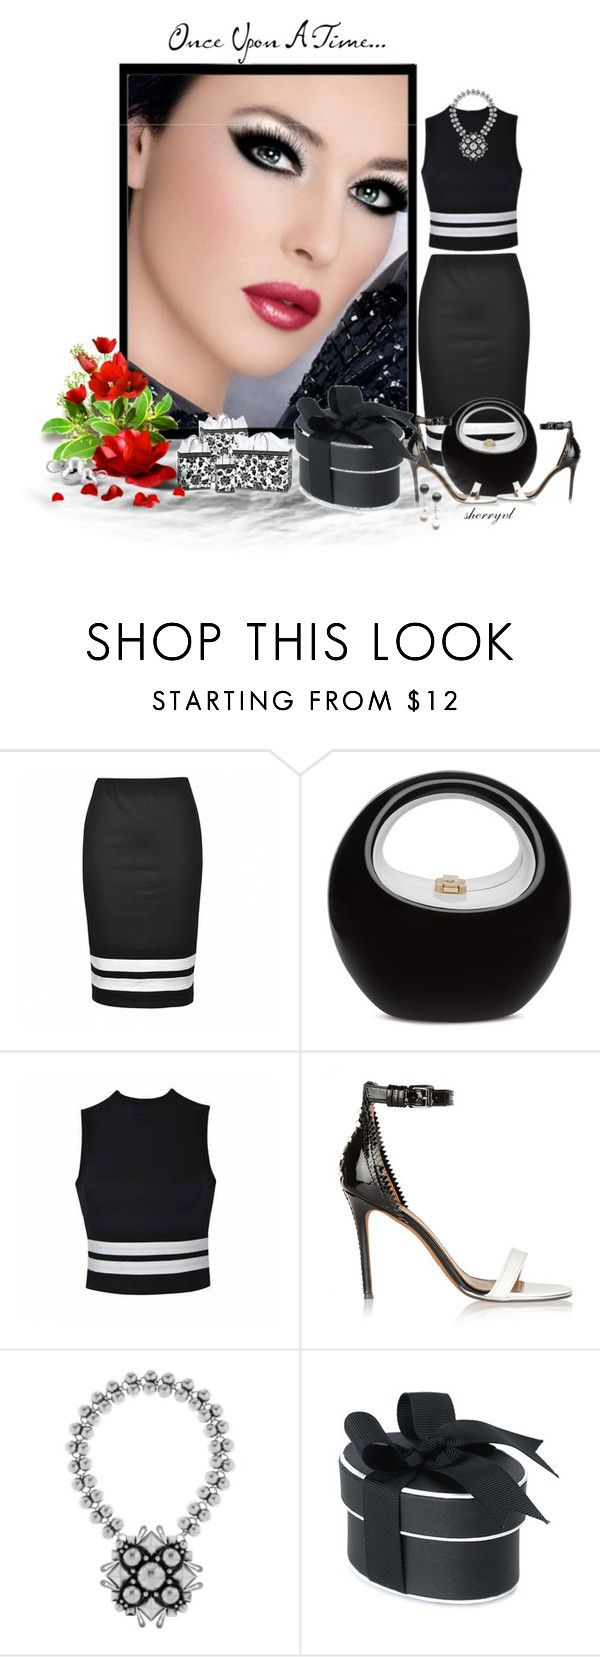 """""""Matching Separates"""" by sherryvl ❤ liked on Polyvore featuring Ally Fashion, Givenchy and Bottega Veneta"""